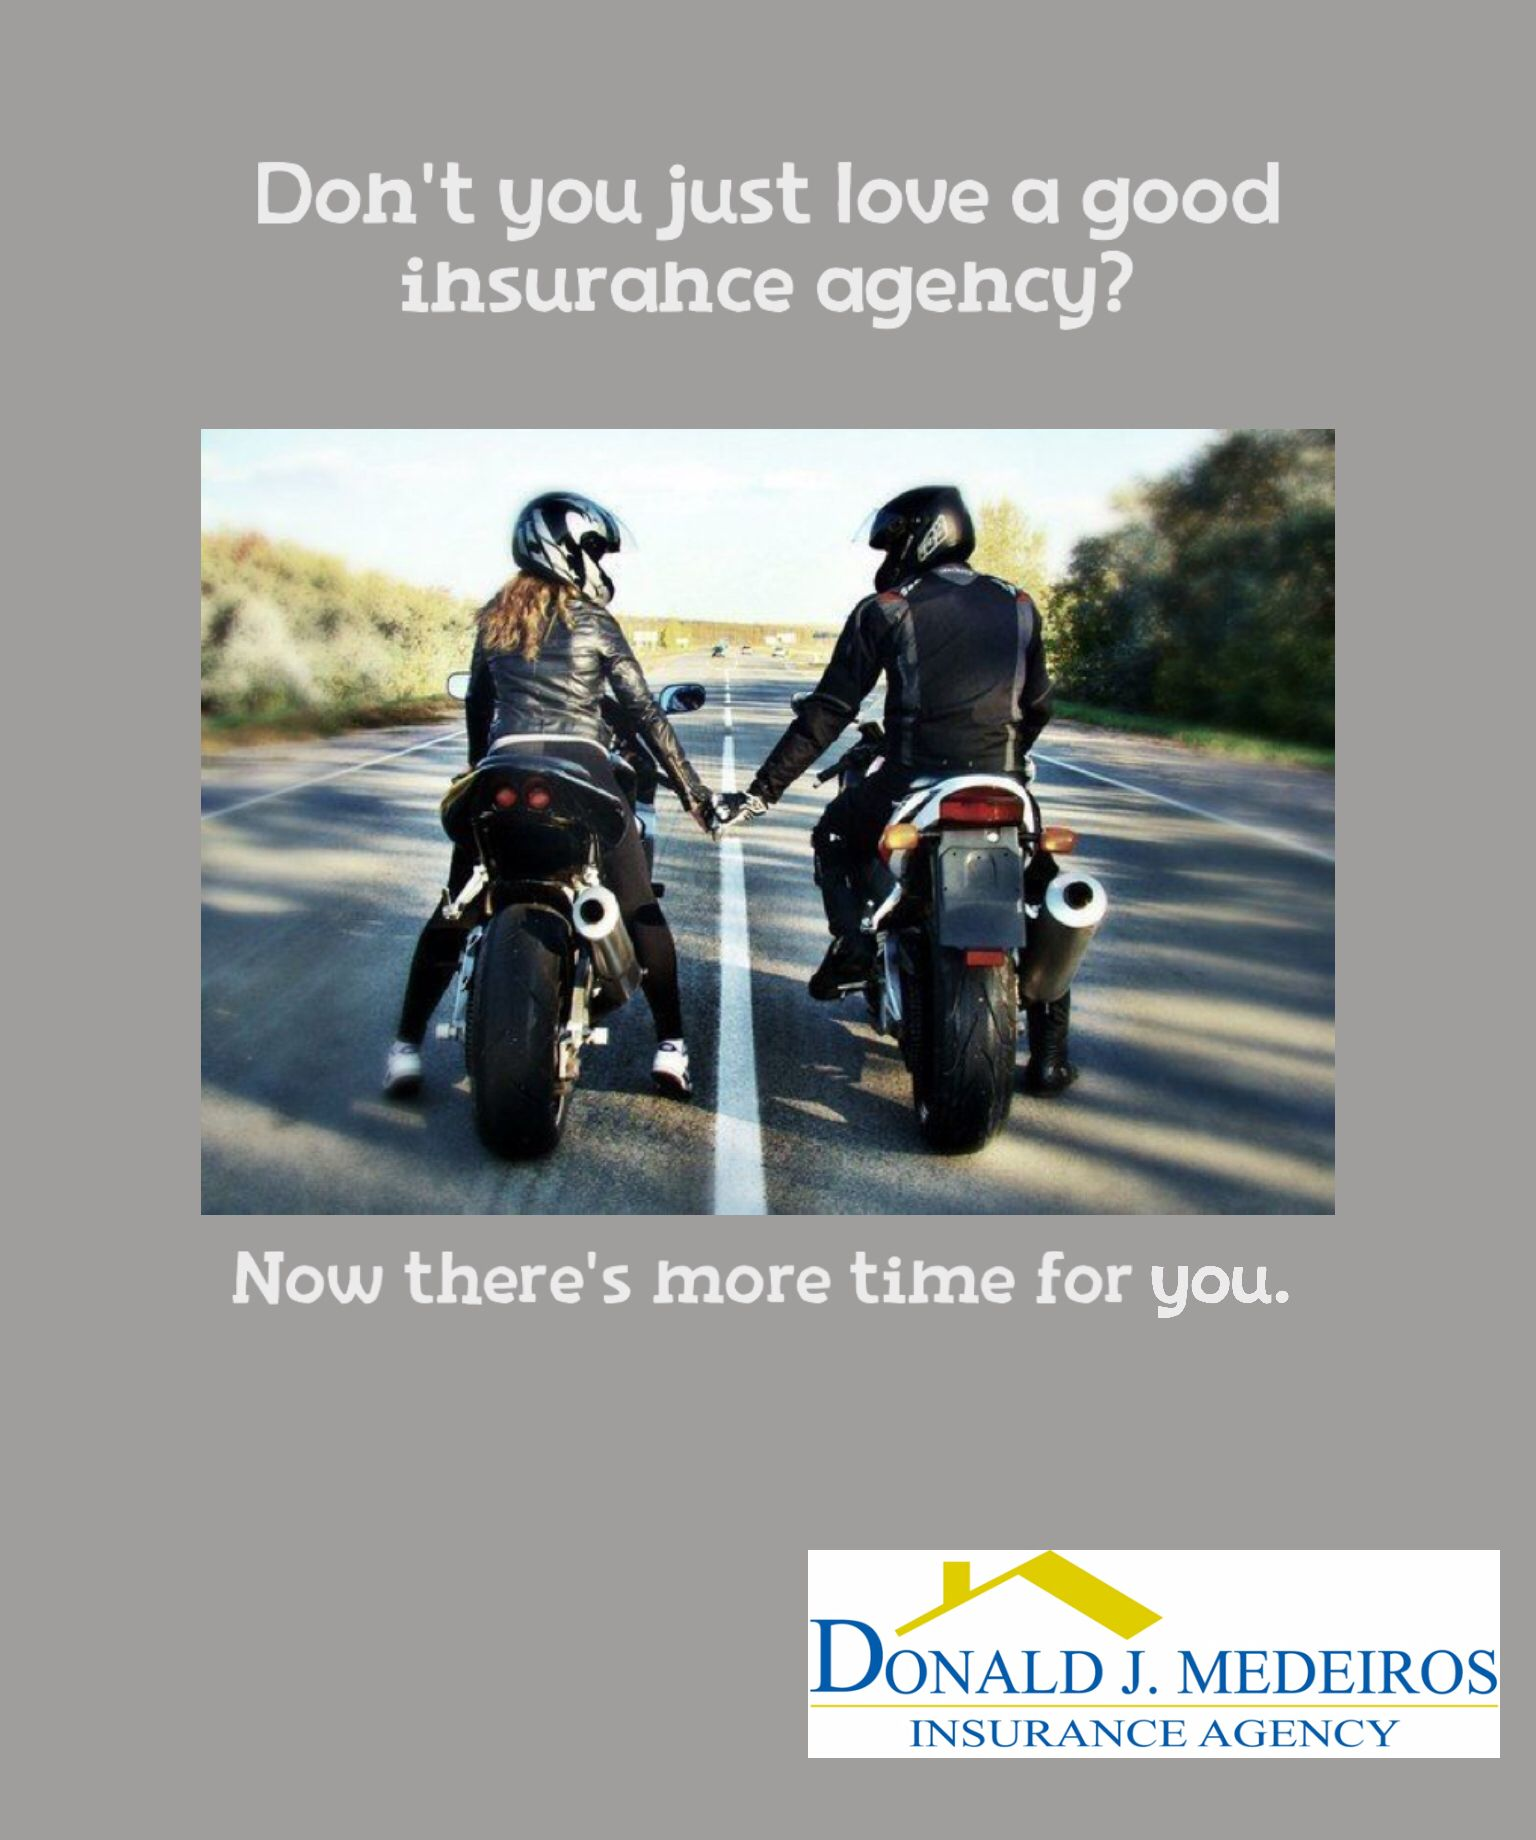 Motorcycle Insurance. A good agency will leave you with